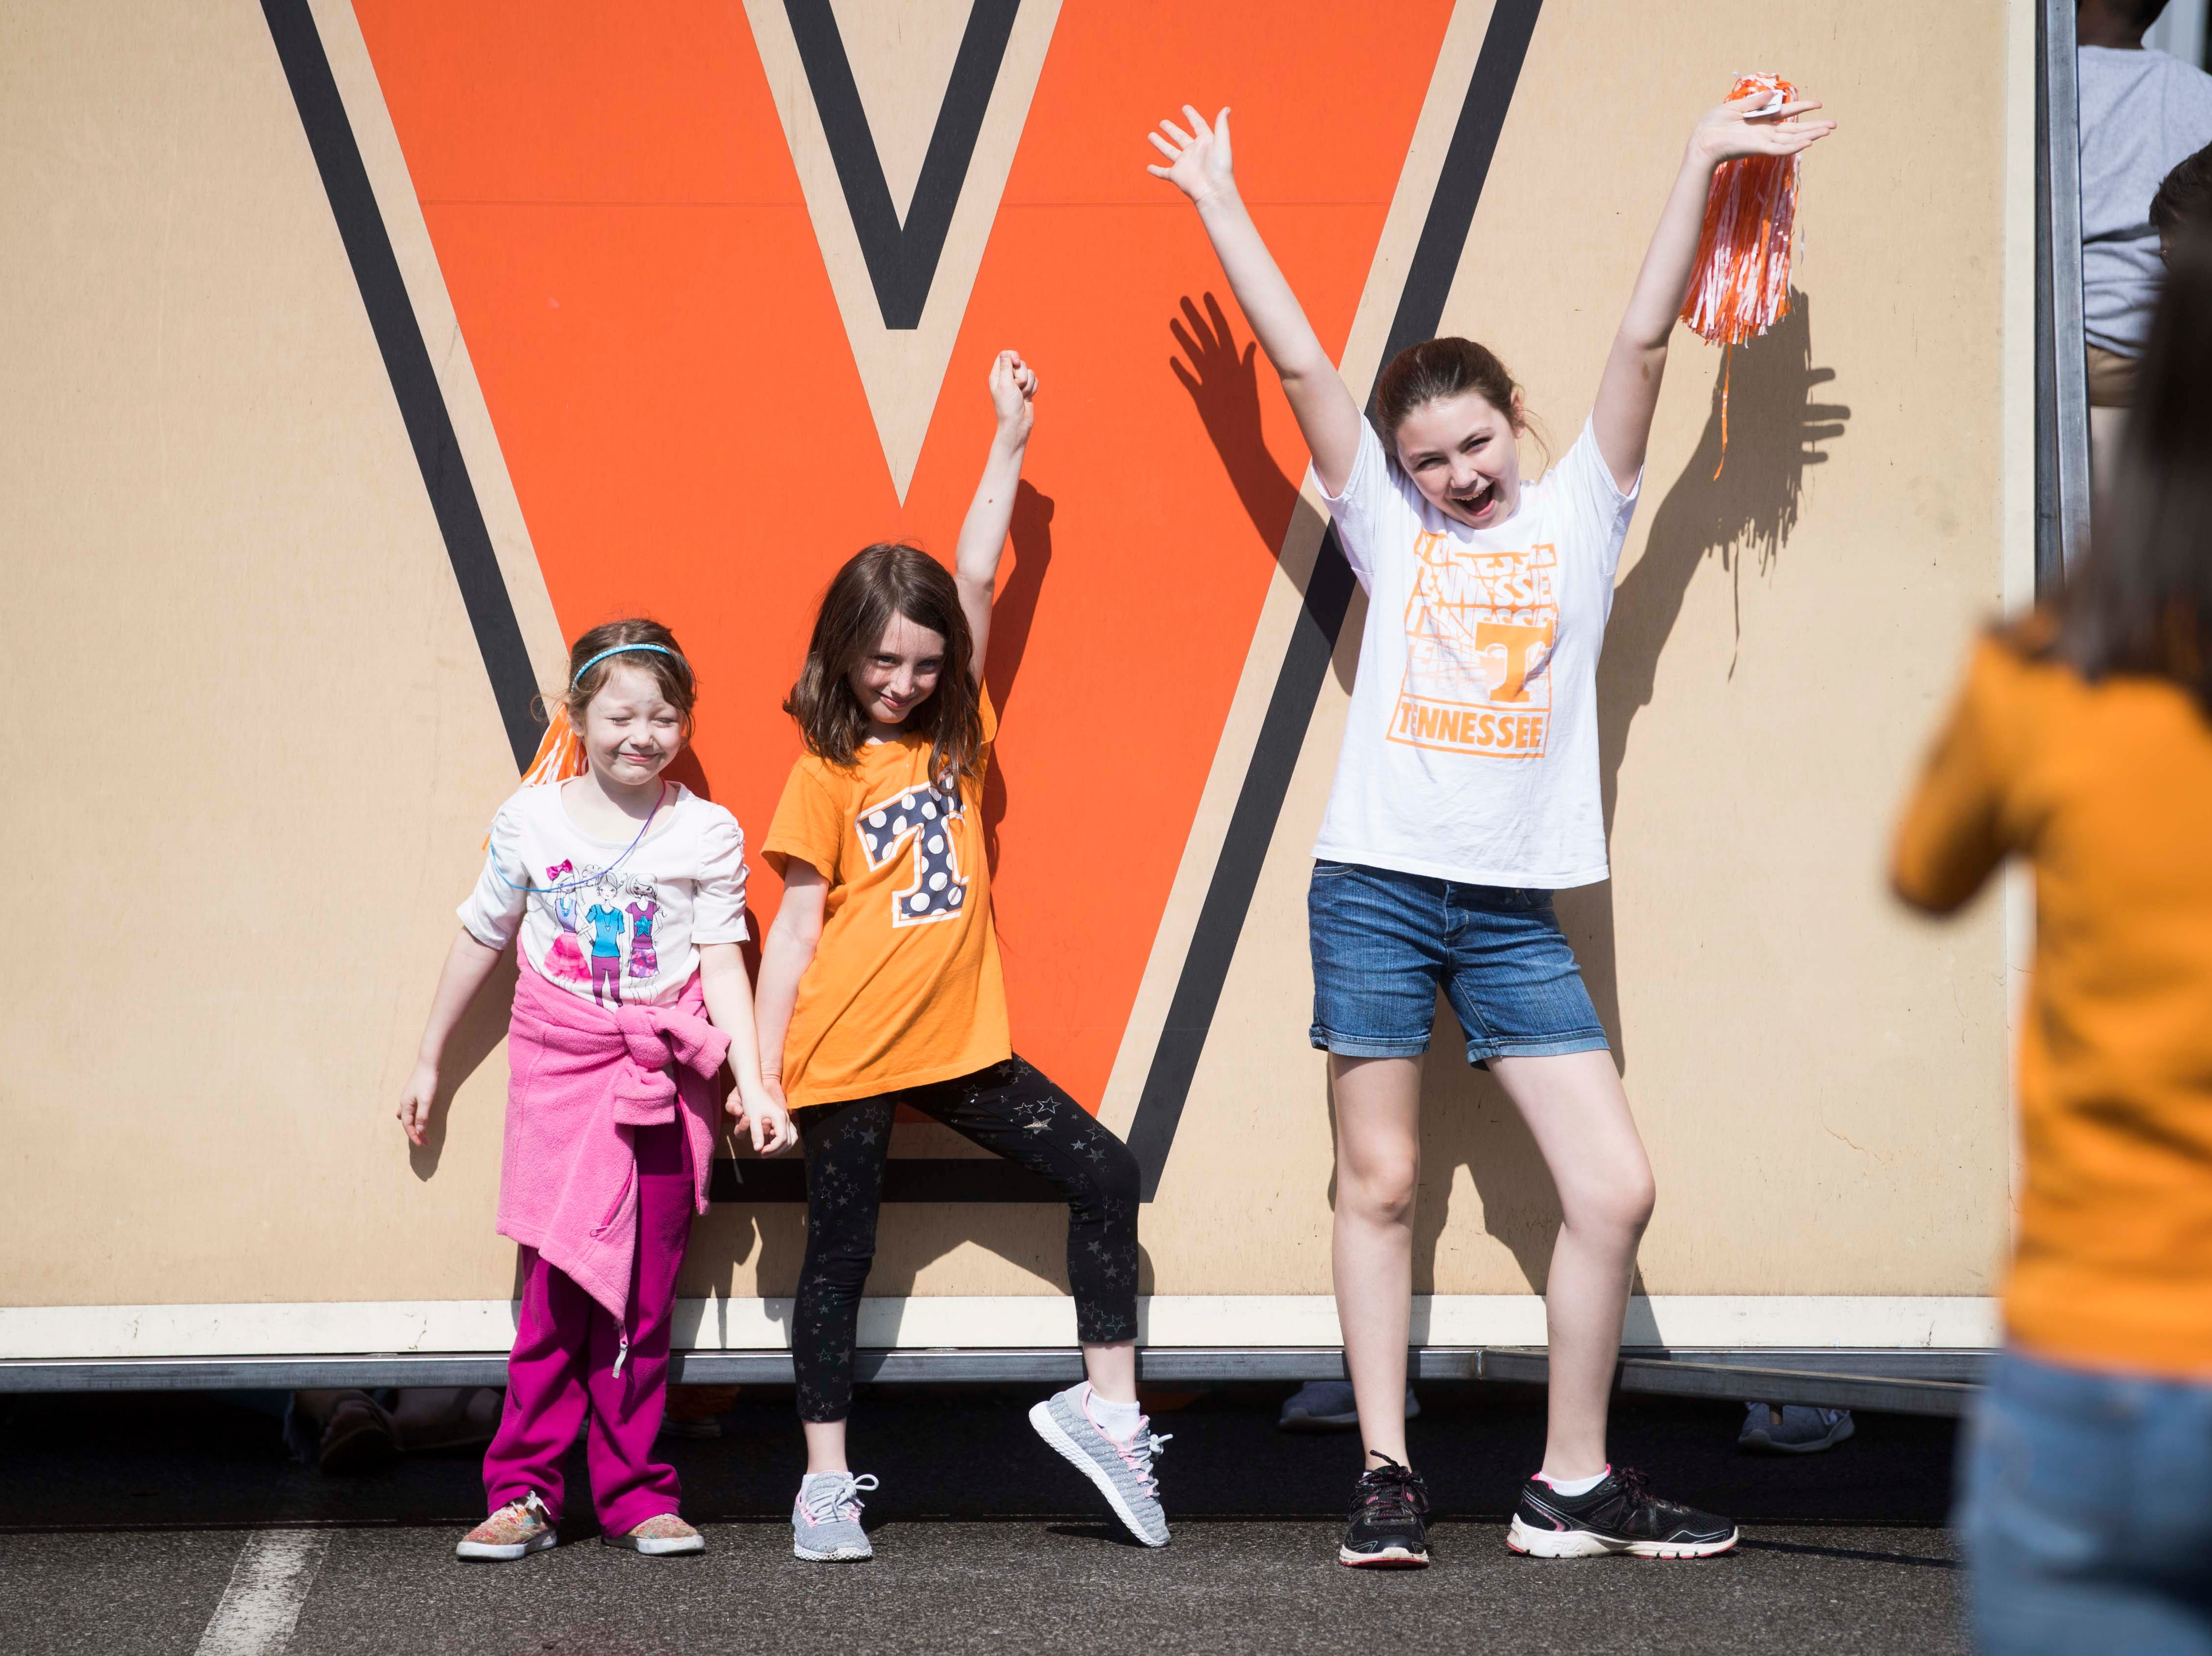 Young fans pose for a photos while waiting for the Vols spring game to begin outside Neyland Stadium in Knoxville Saturday, April 13, 2019.